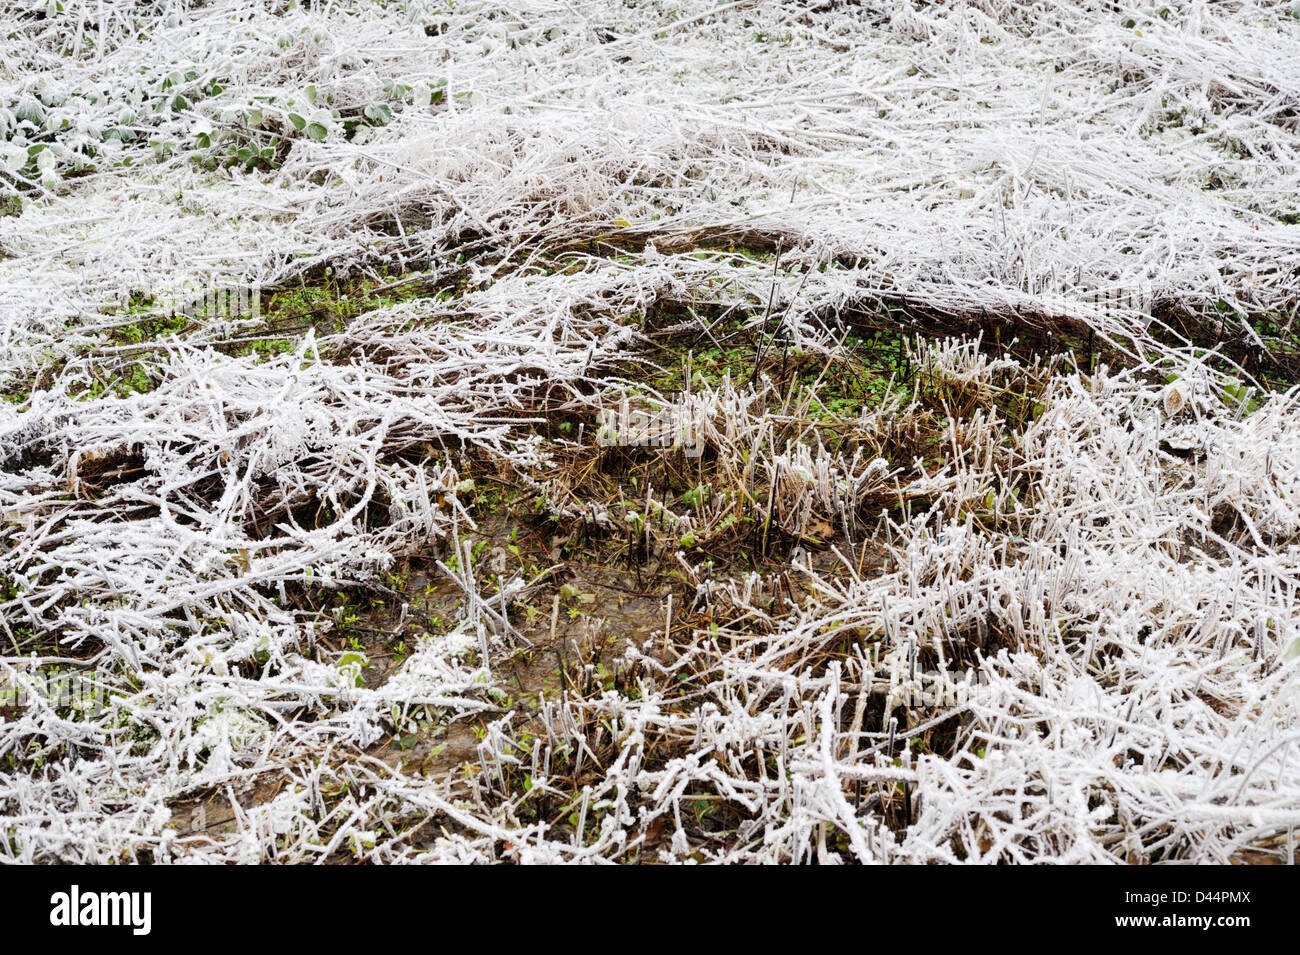 A wet flush in a frozen field, warmer than its surroundings, forms an ecological niche, Wales. - Stock Image